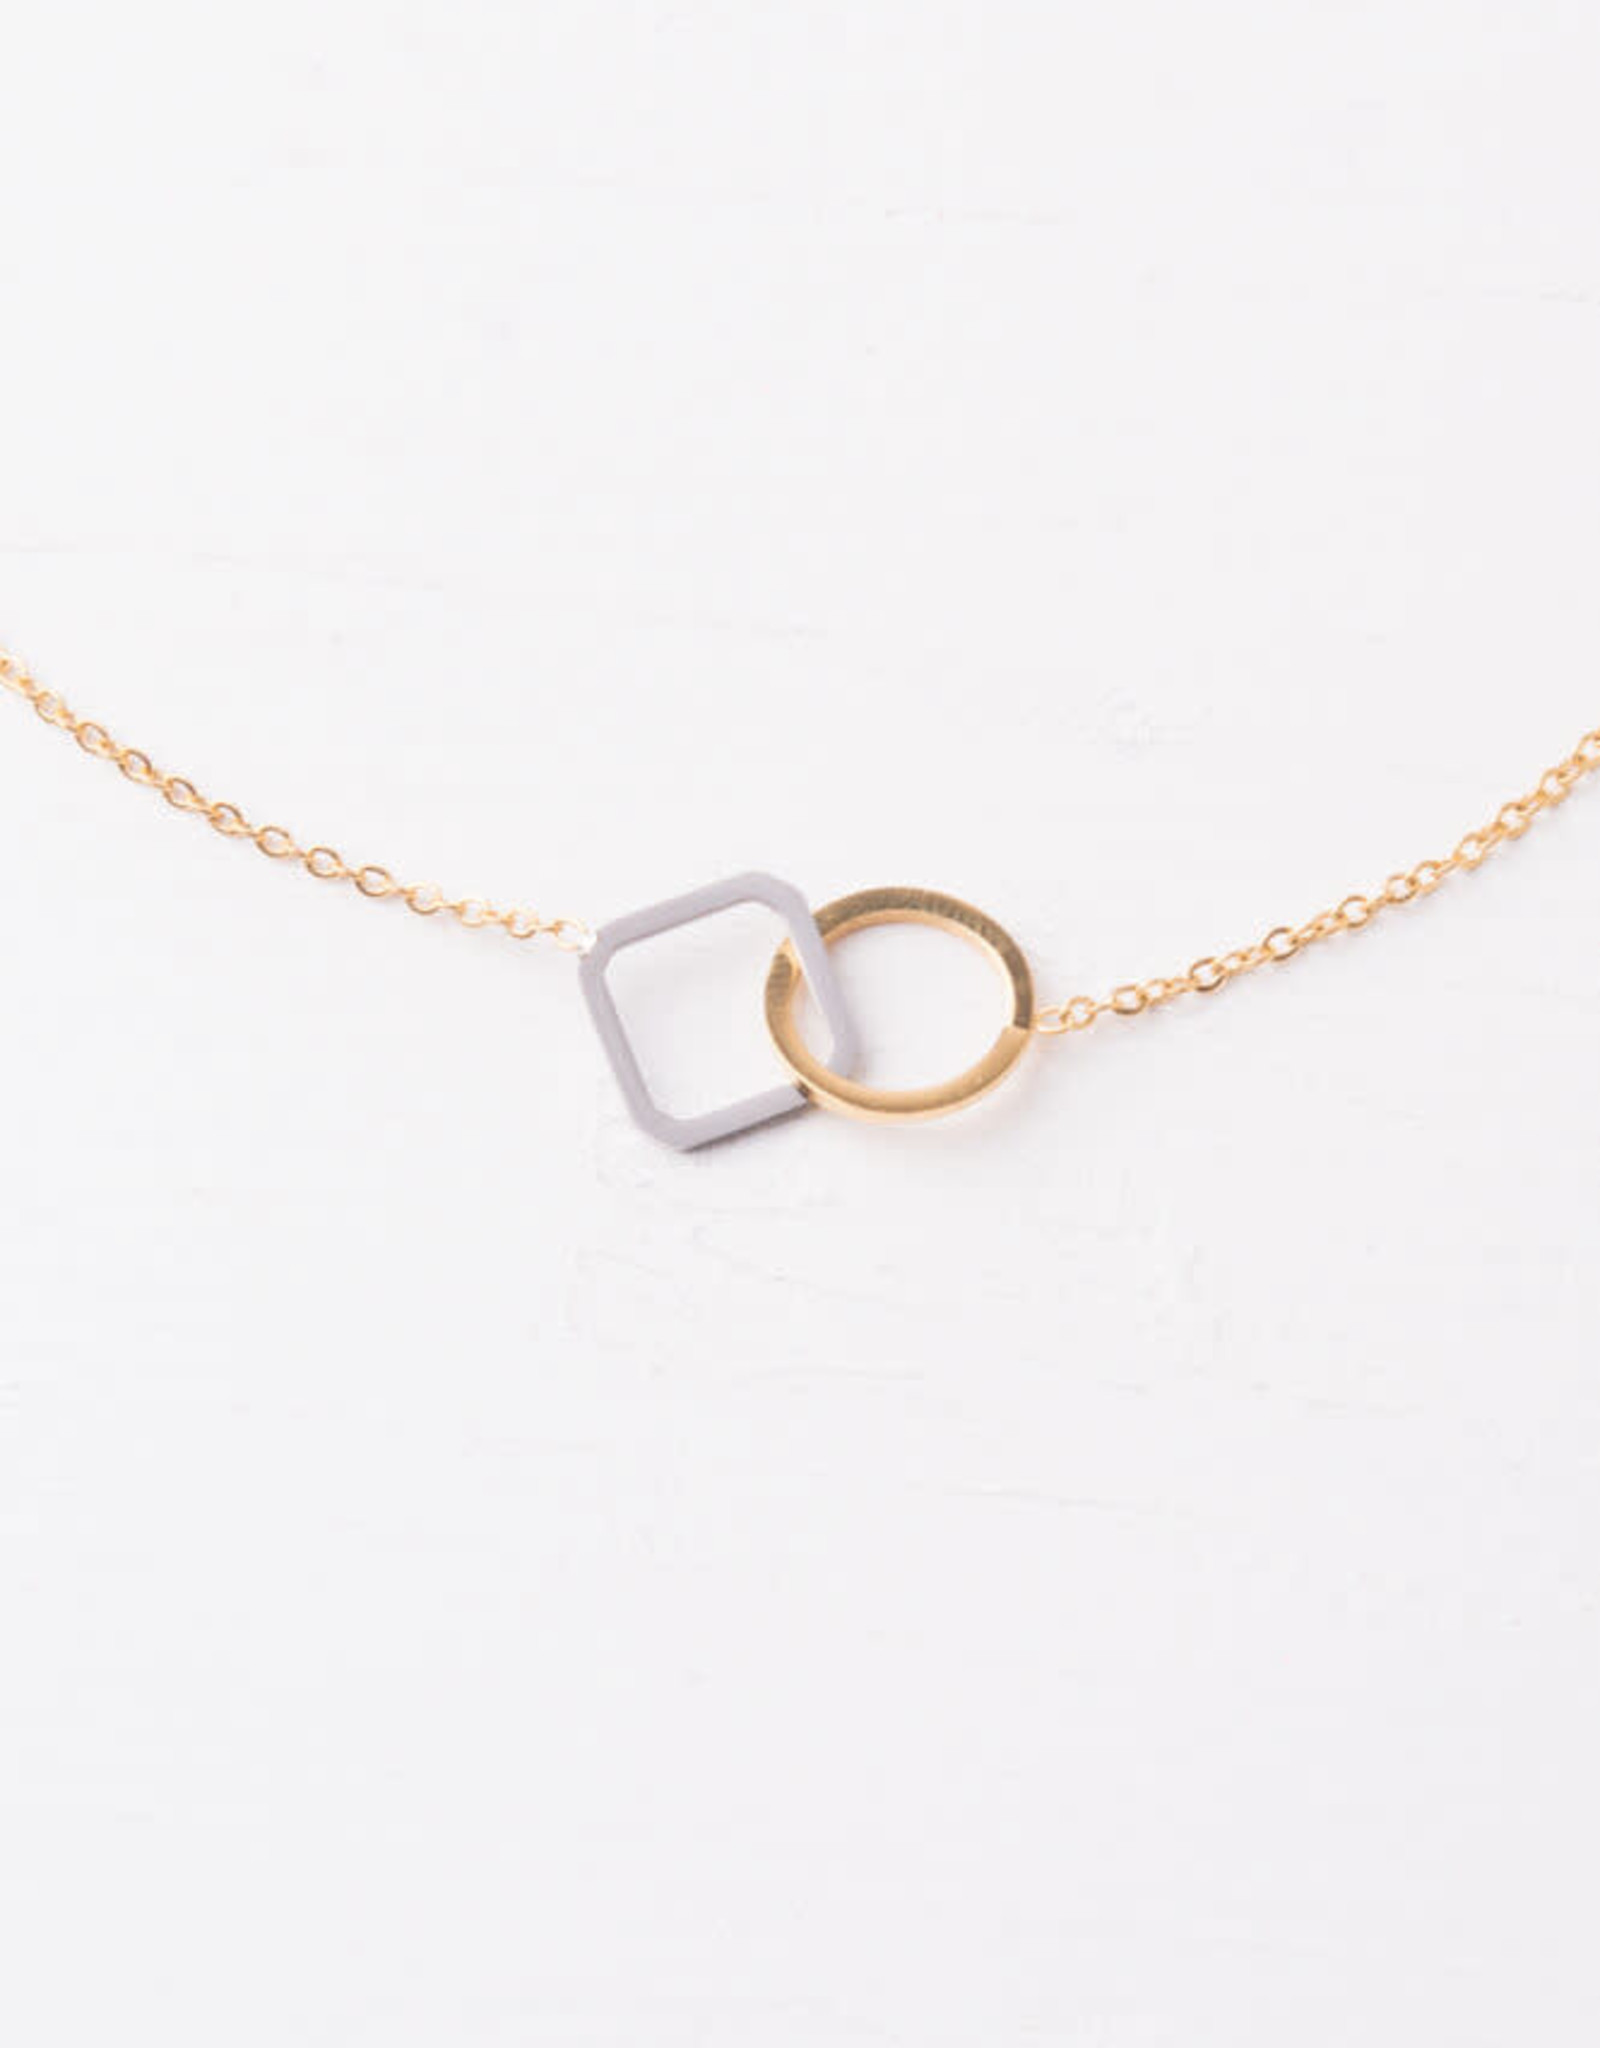 Caprice Circle and Square Necklace